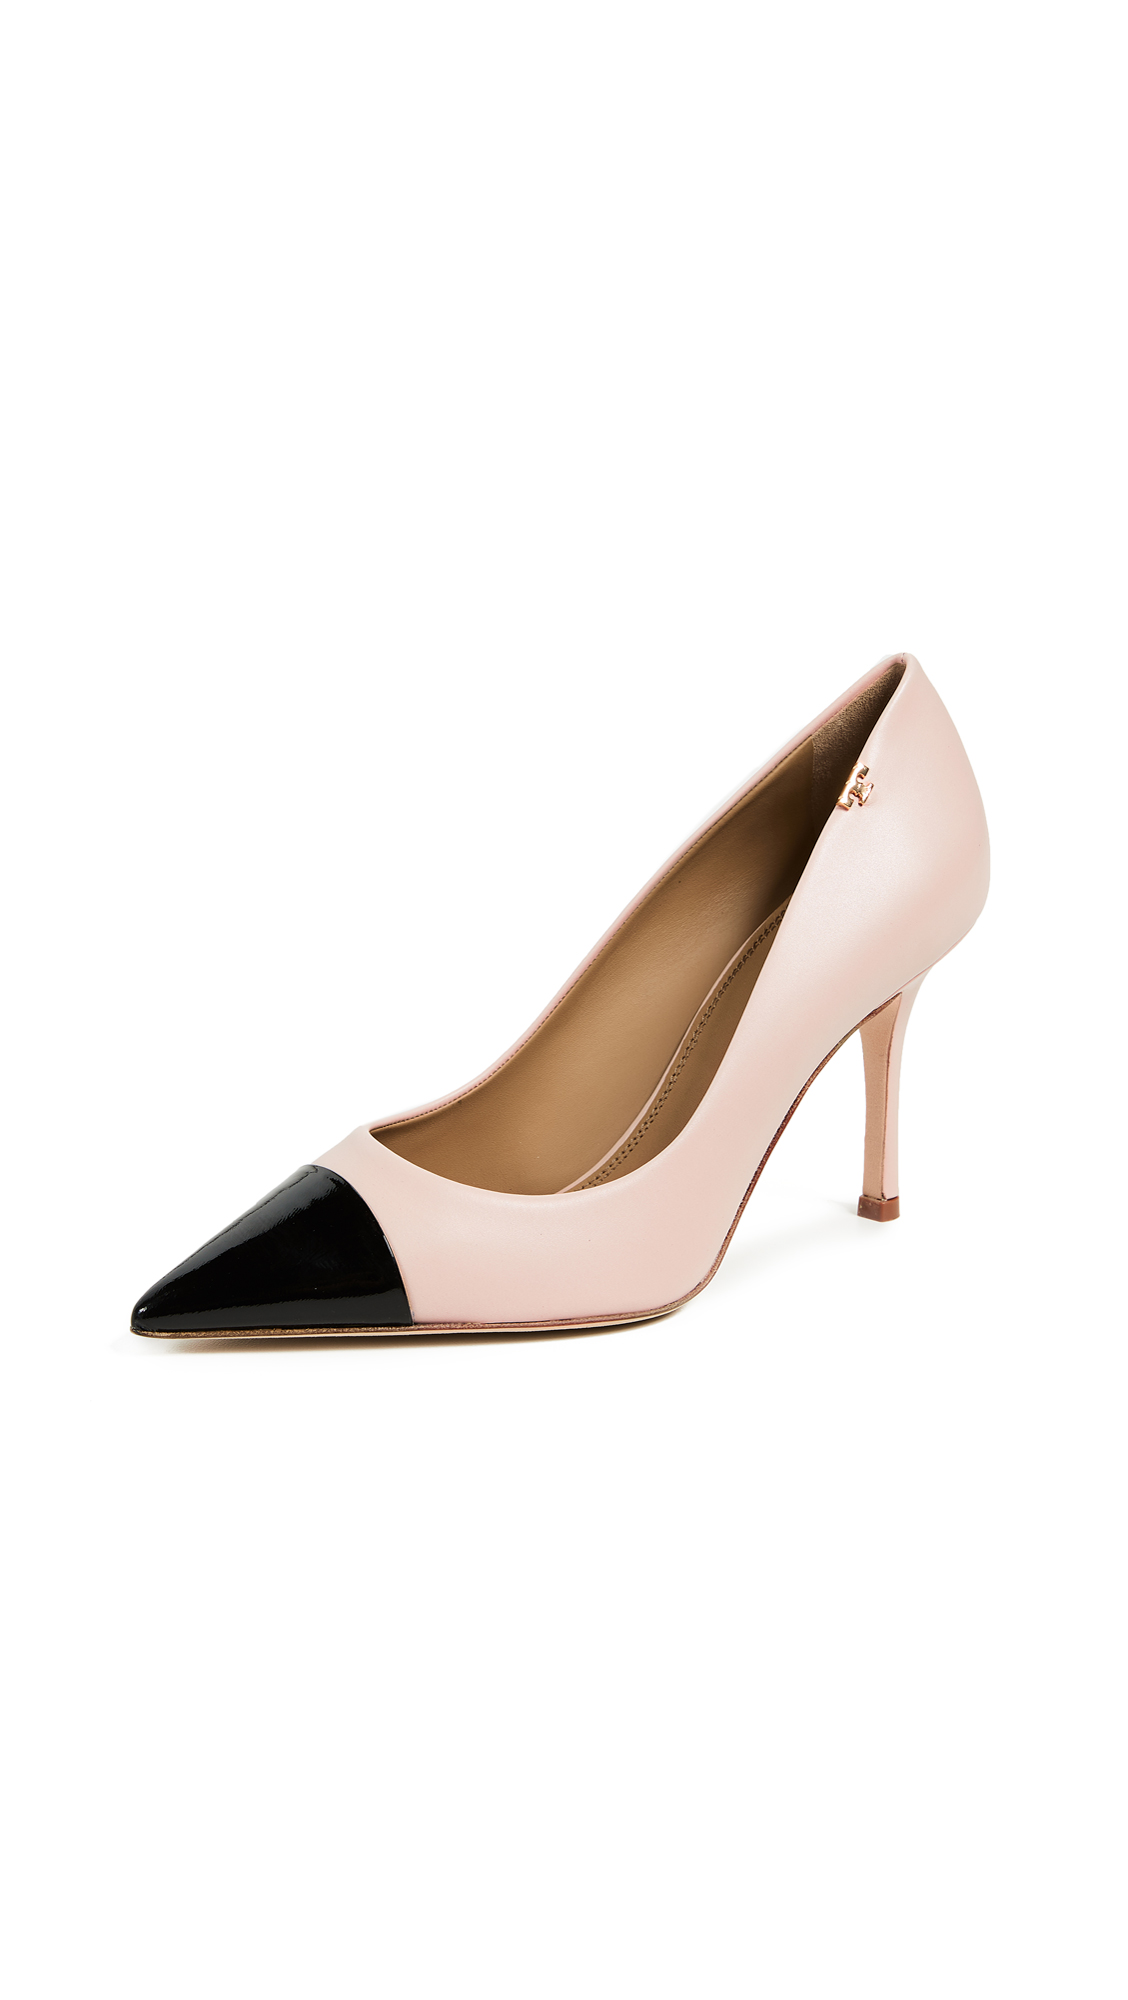 Tory Burch Penelope Cap Toe Pumps - Sea Shell Pink/Perfect Black